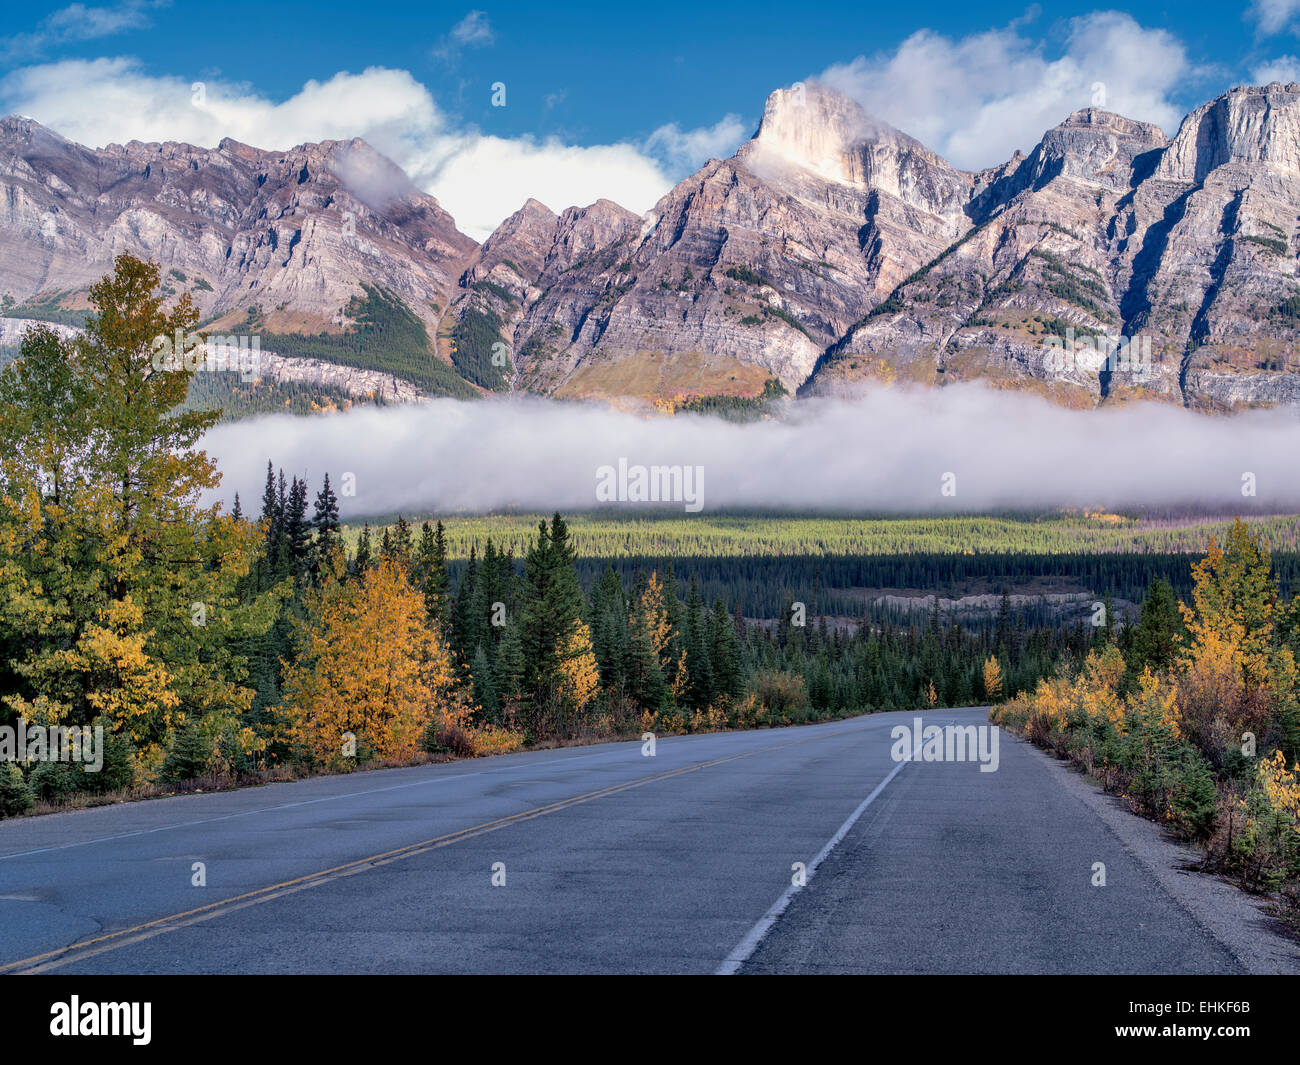 Road, fog and low clouds with autumn colors. Banff National Park. Alberta, Canada - Stock Image